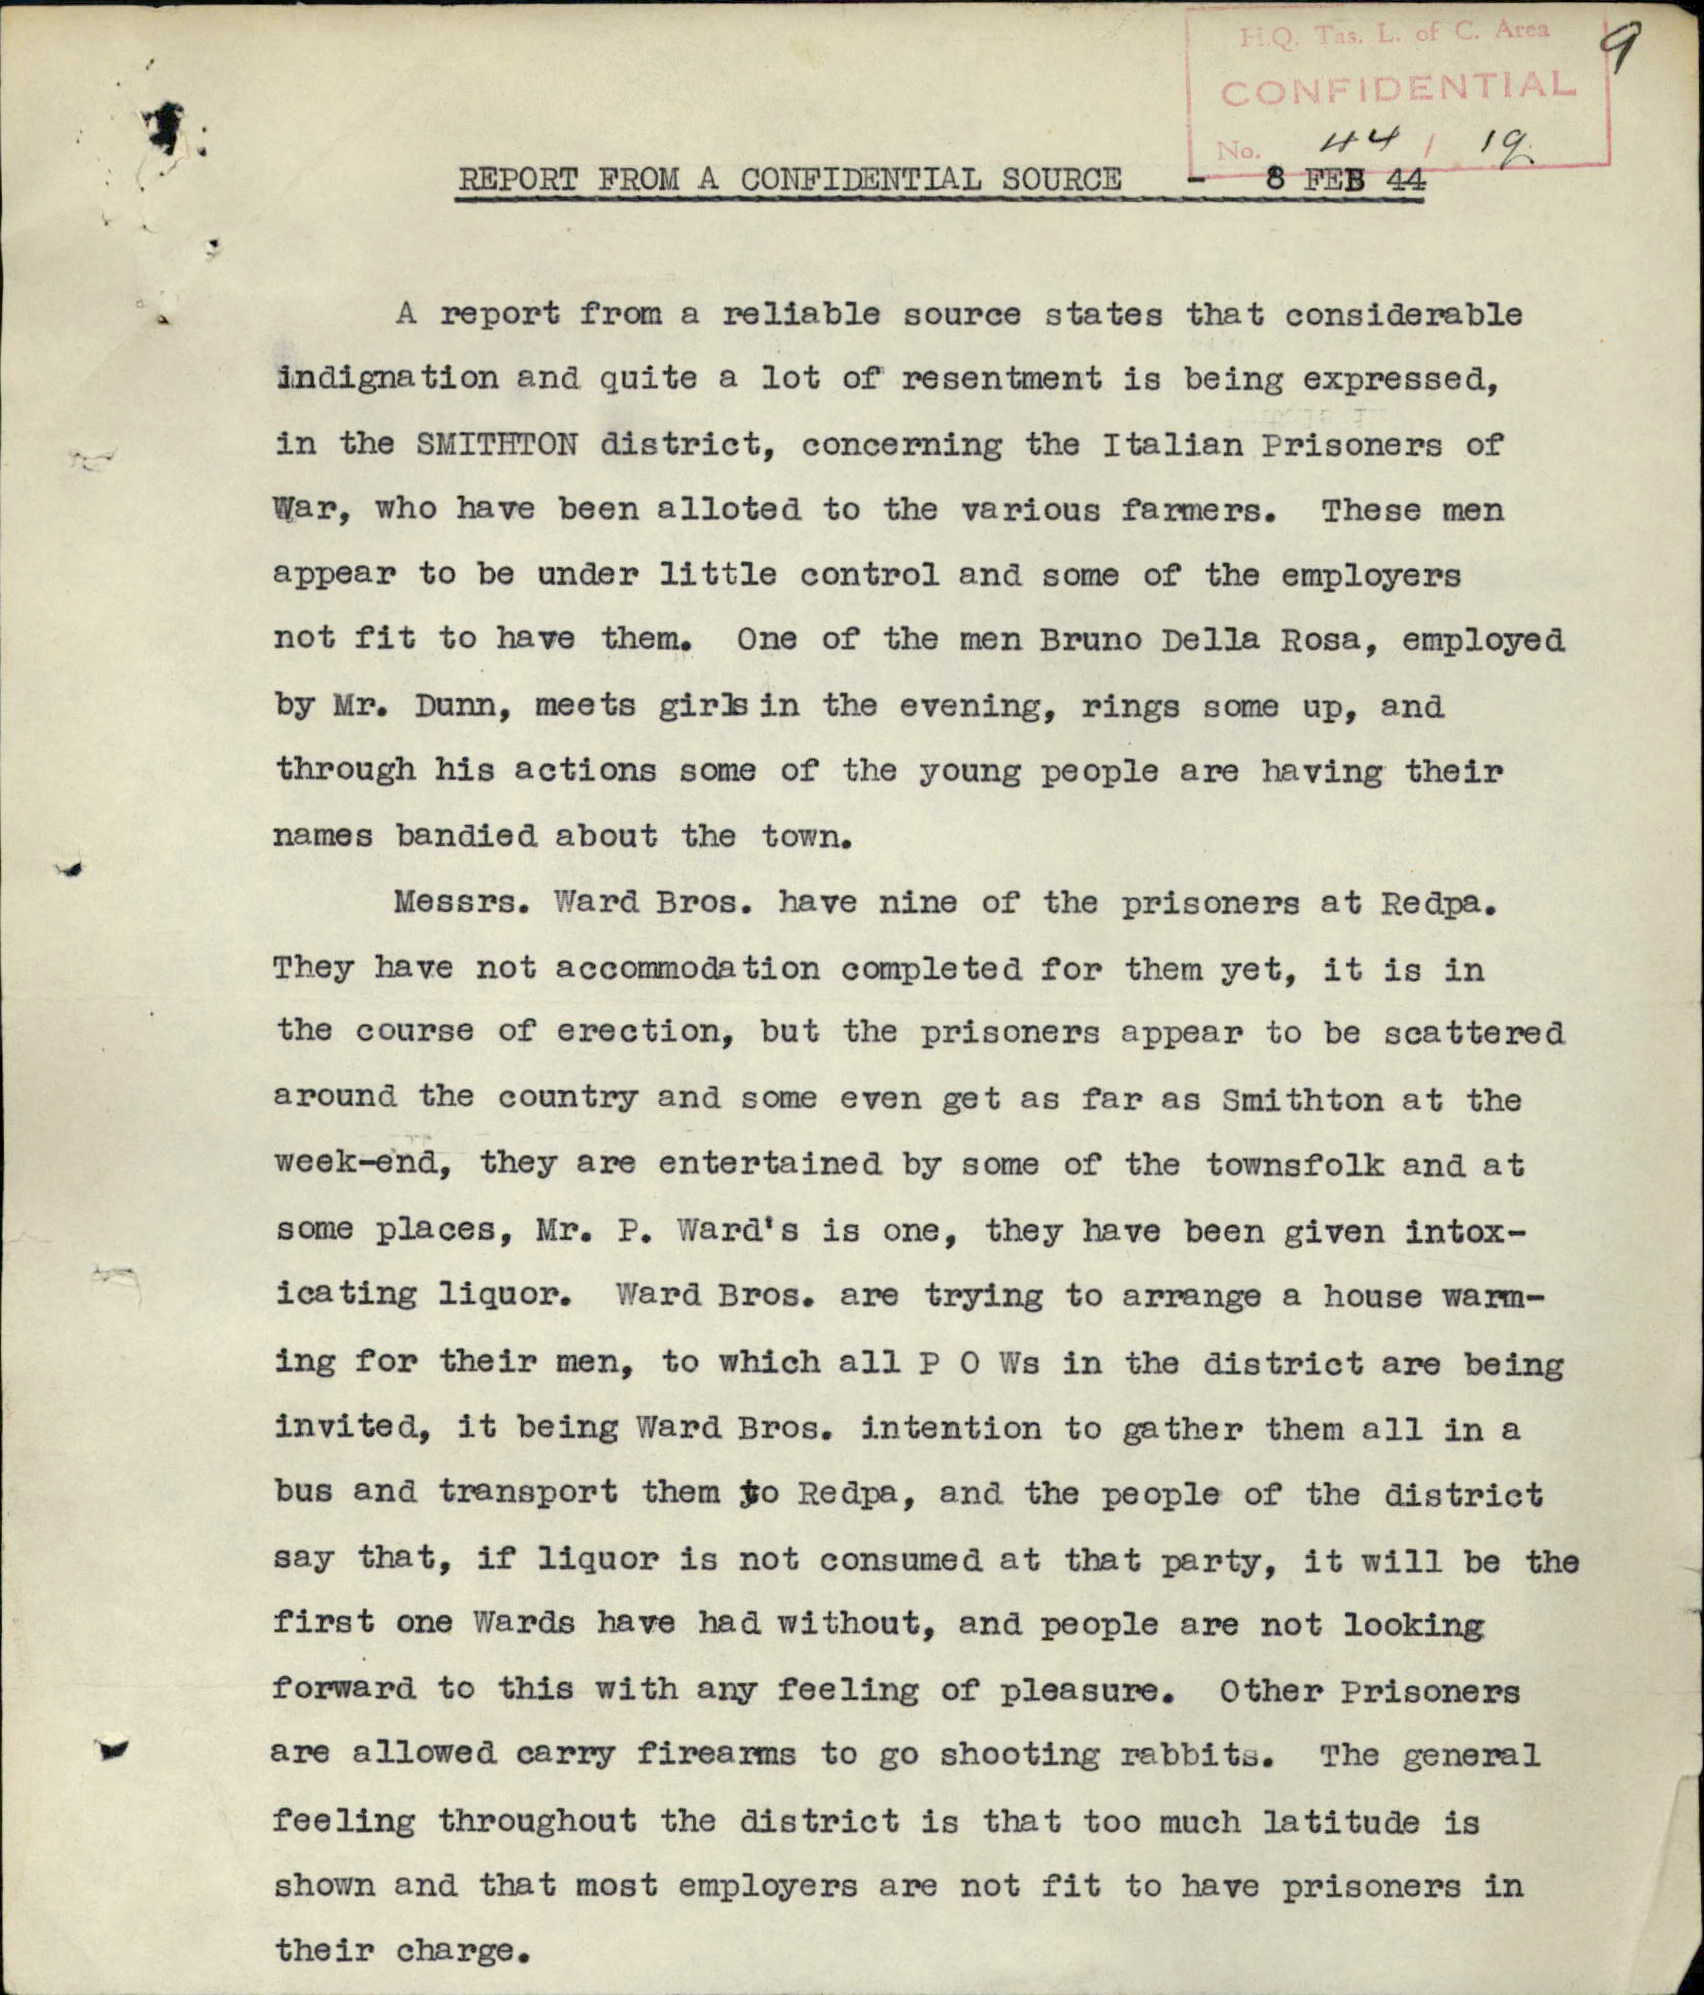 NAA P617, 519 3 151 PART 2 Page 116